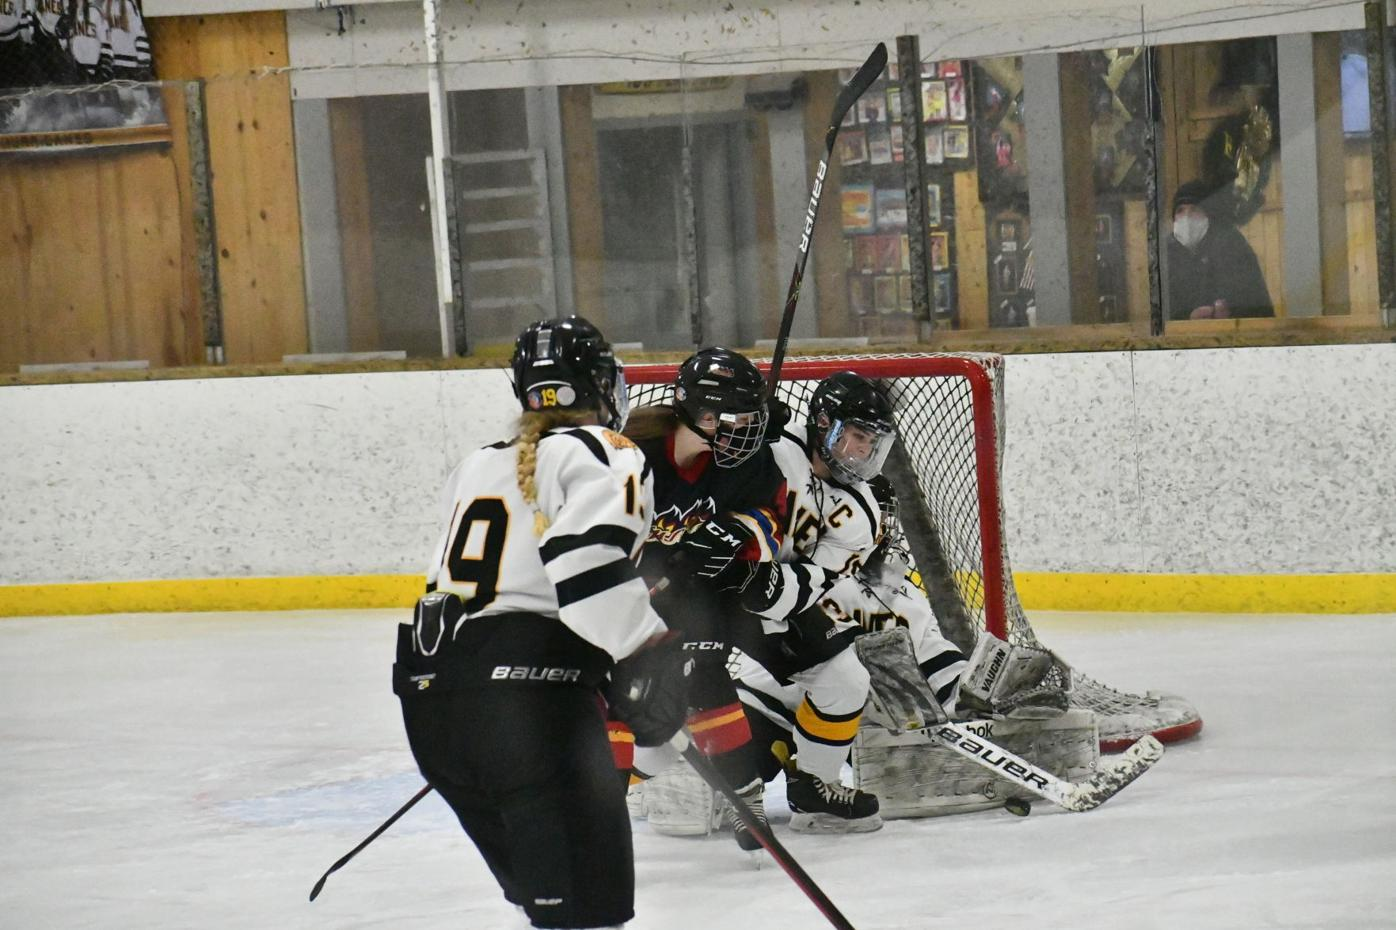 Making the save